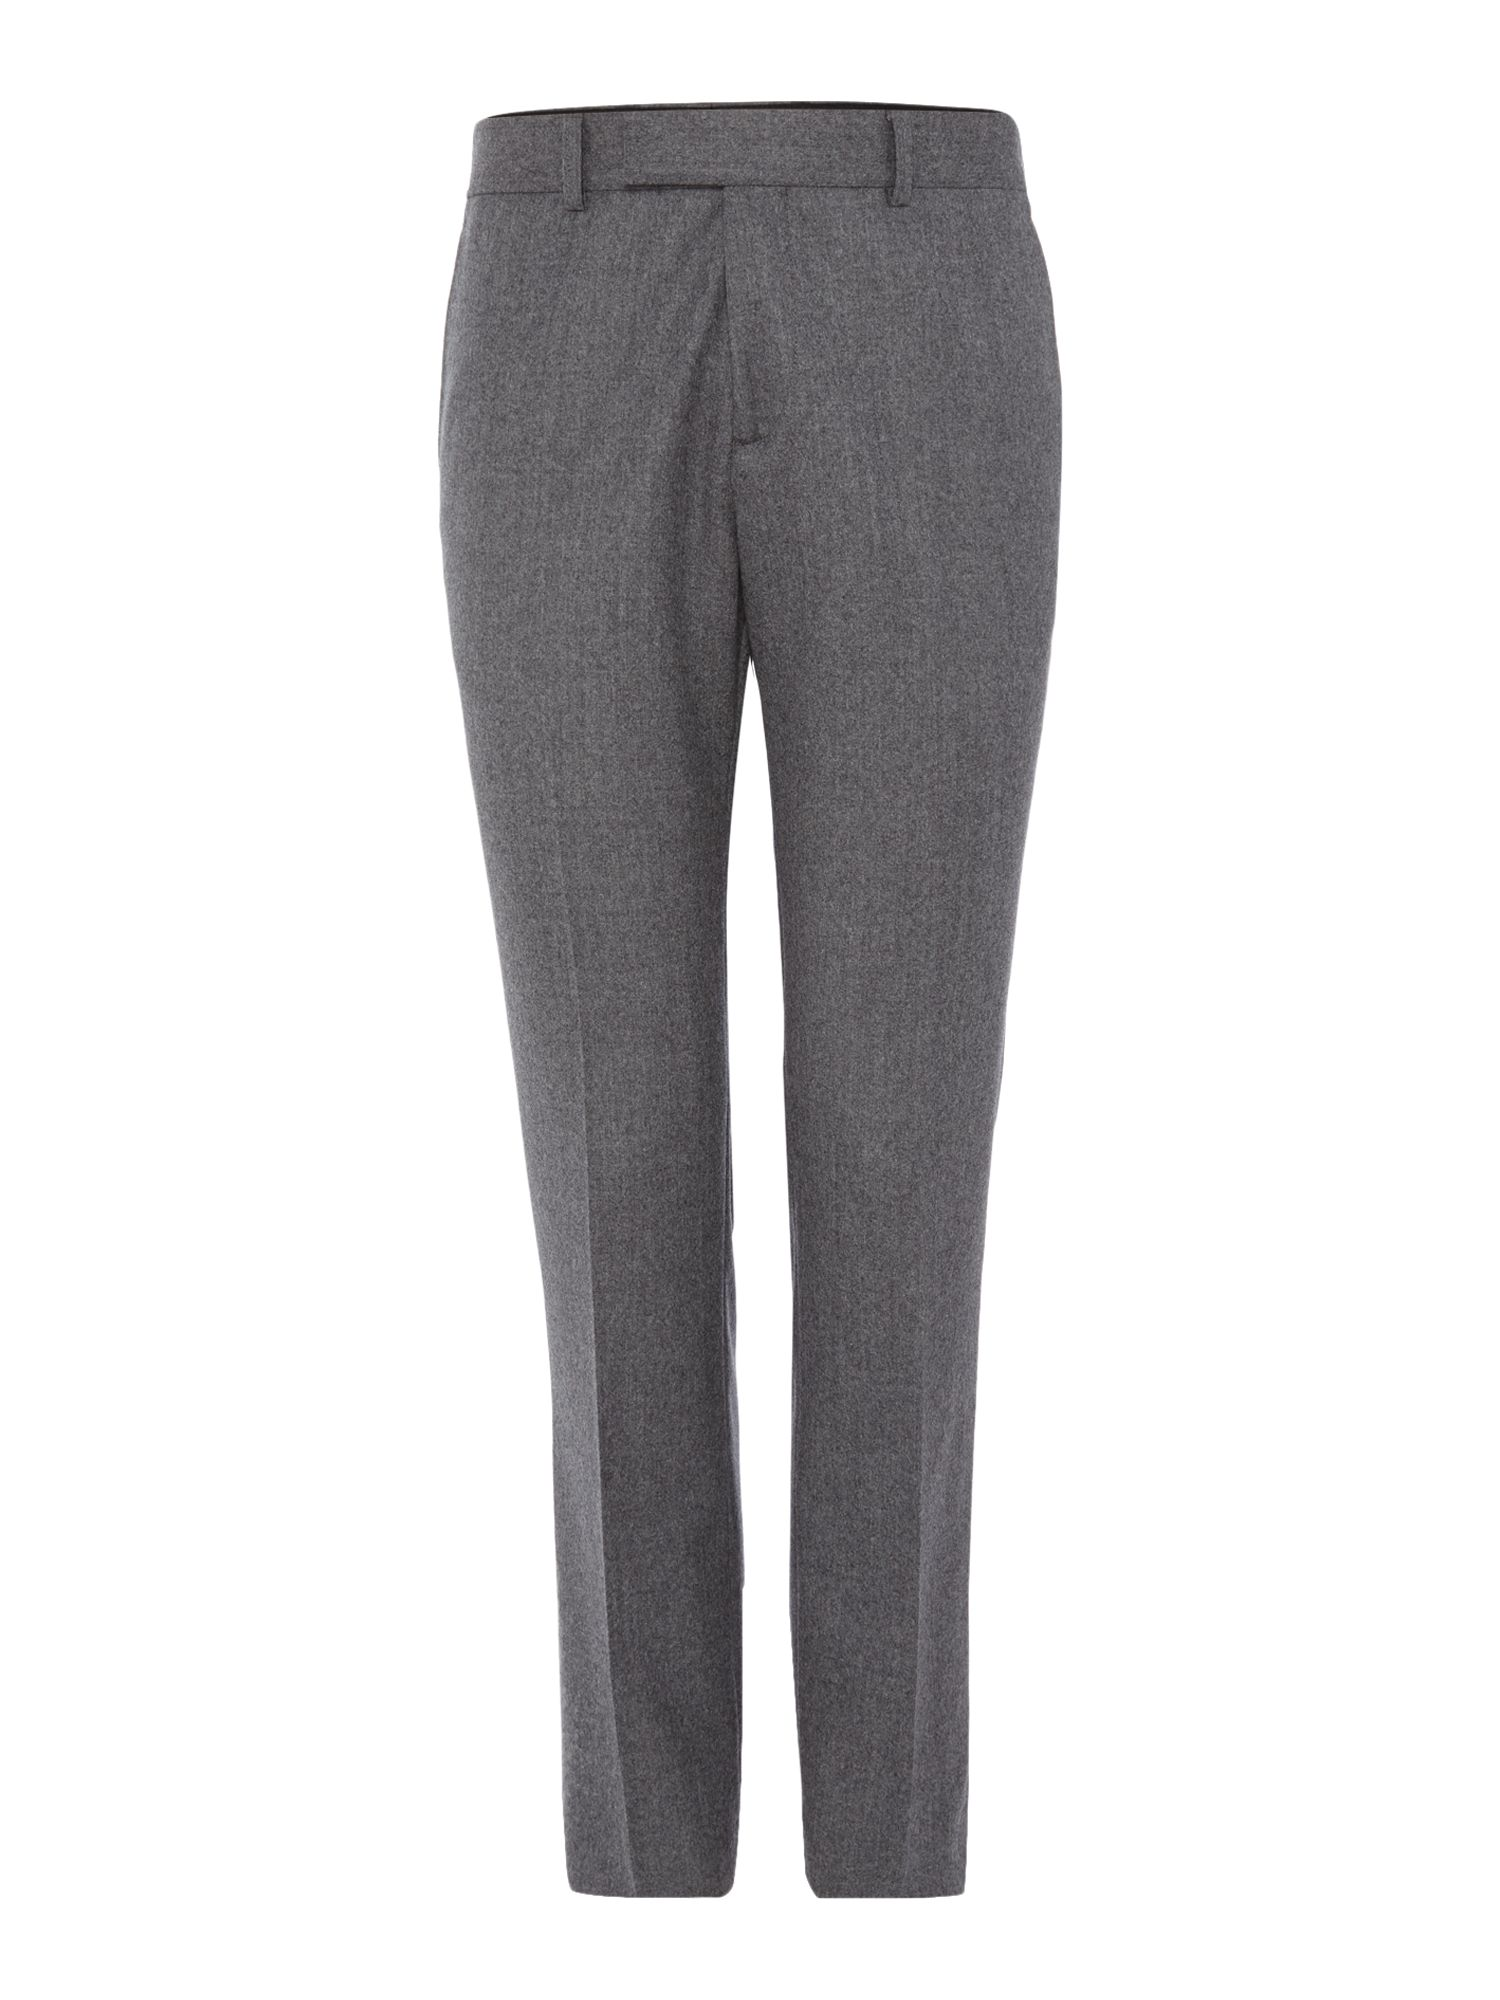 Men's Simon Carter Flannel Trousers, Light Grey